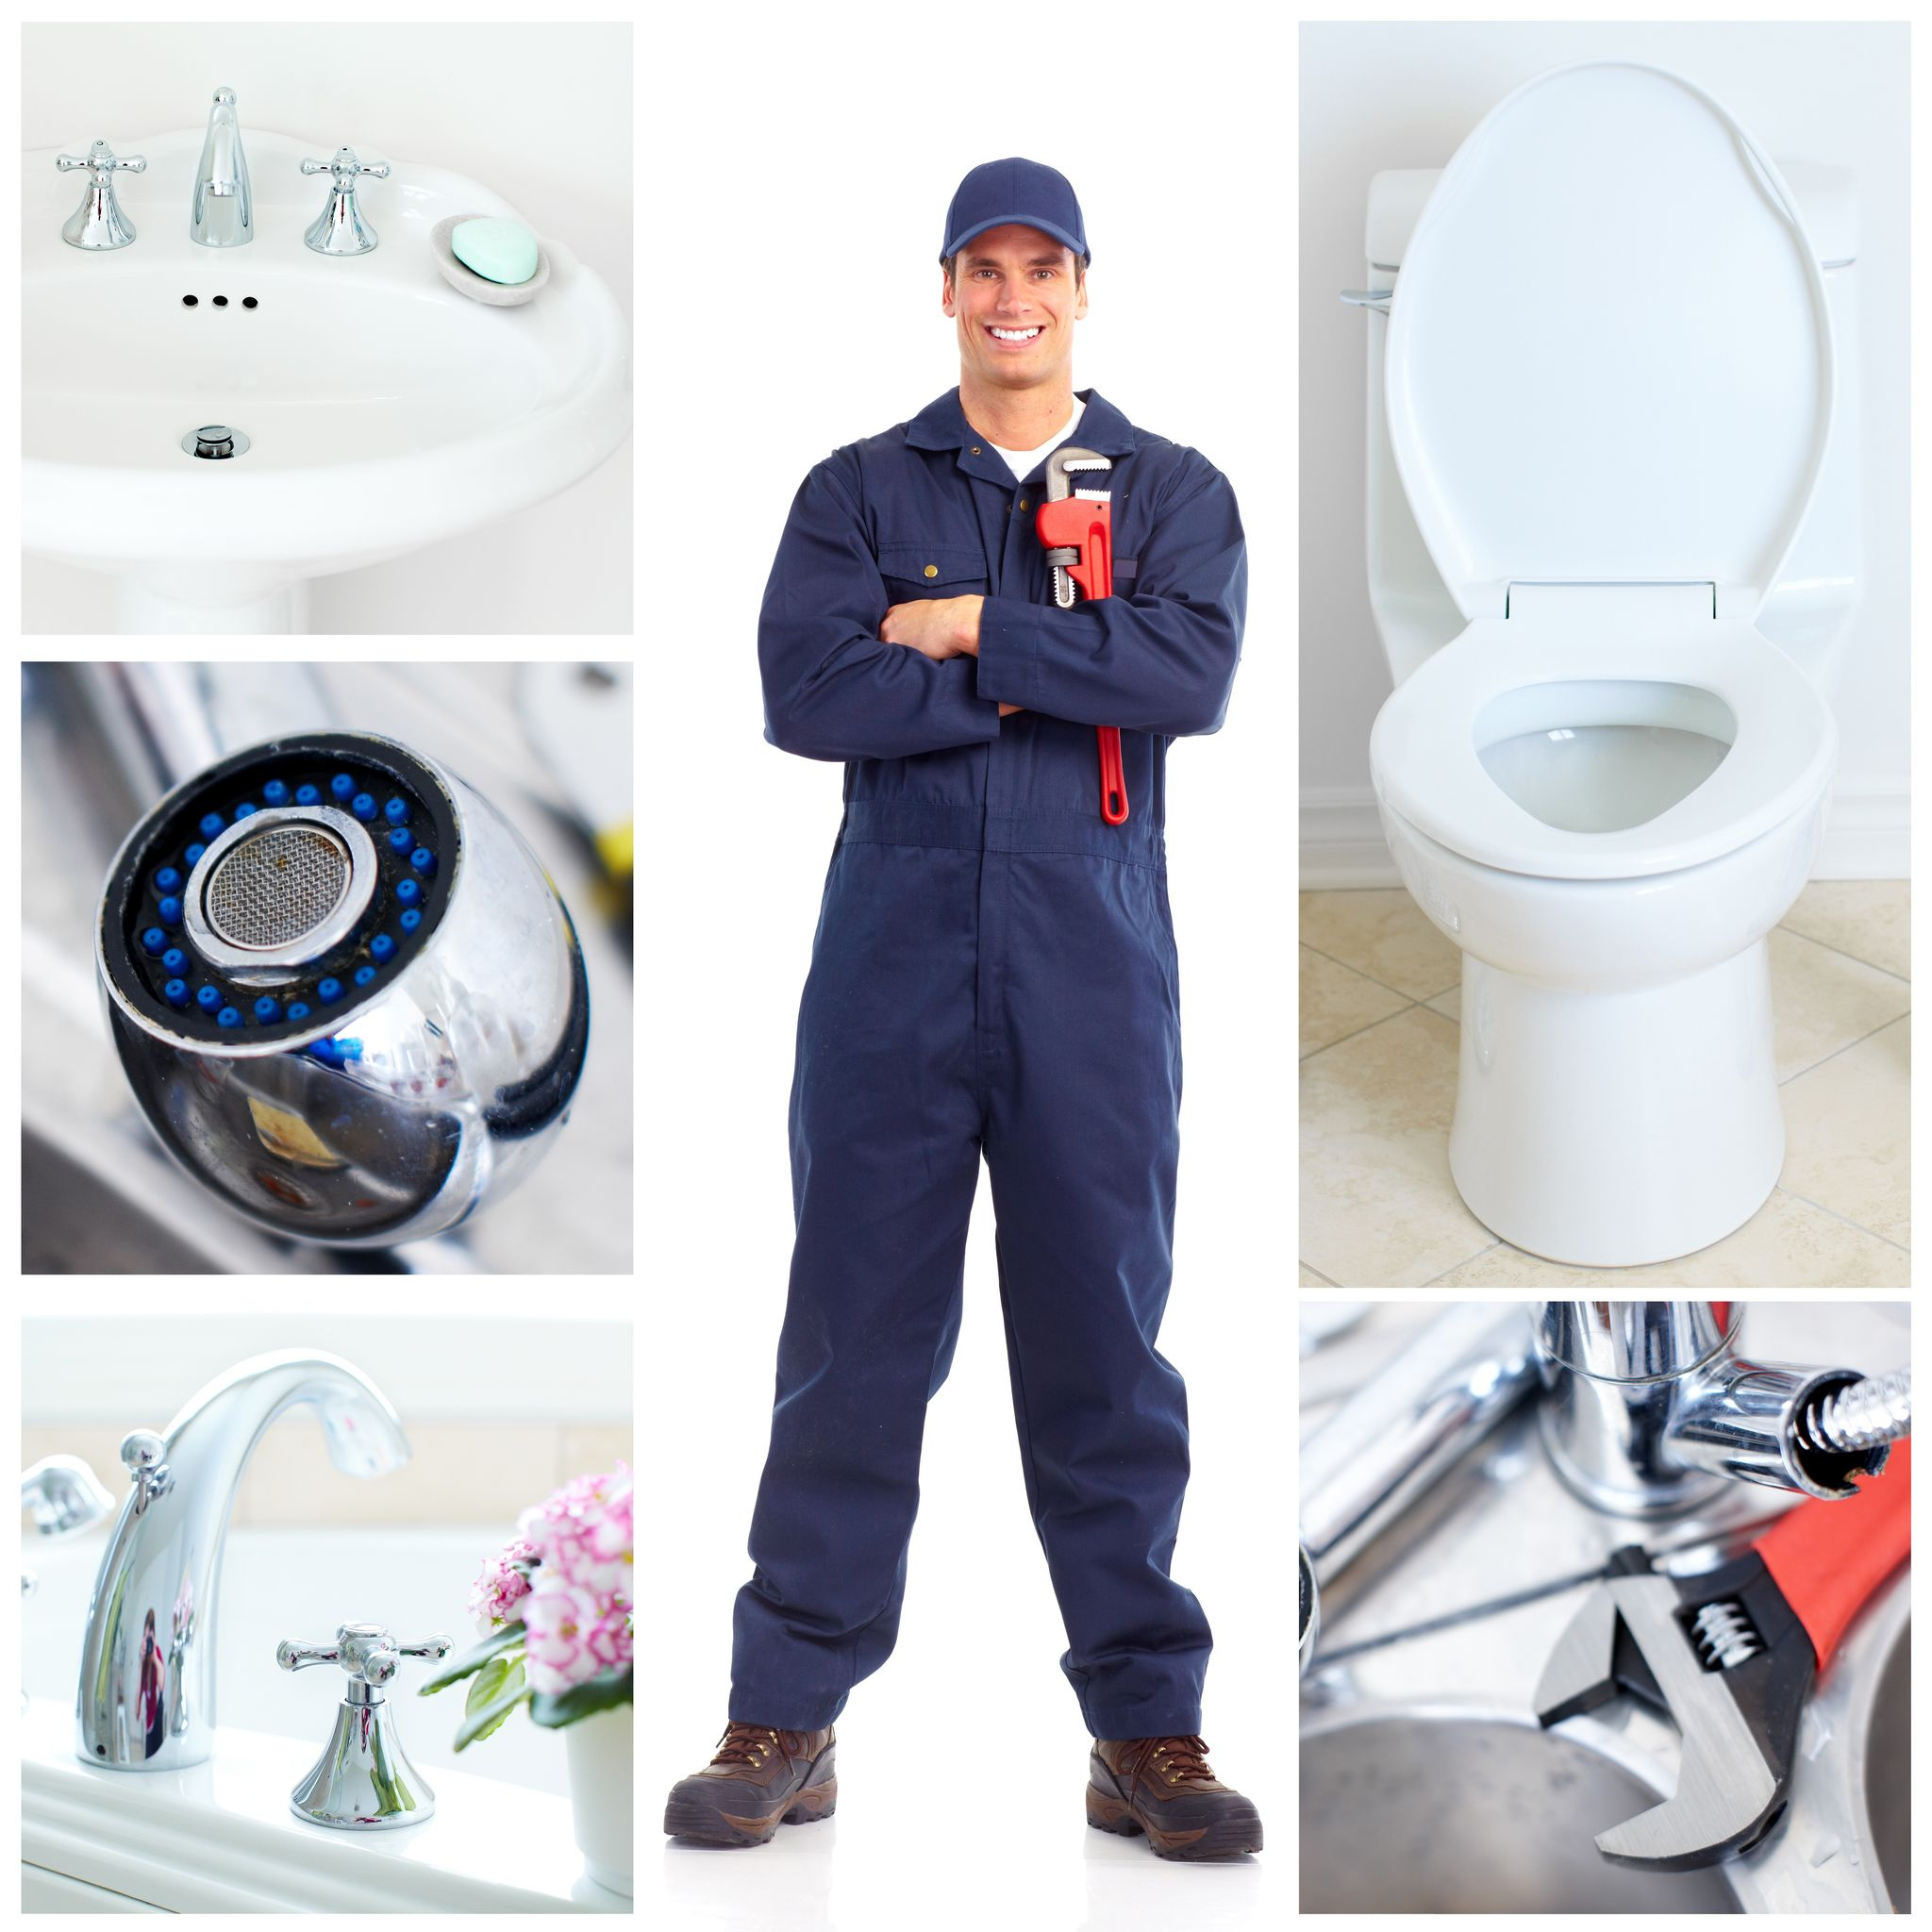 electrical repair enterprise plumber bros by goolsby sink plumbing kitchen contractors al